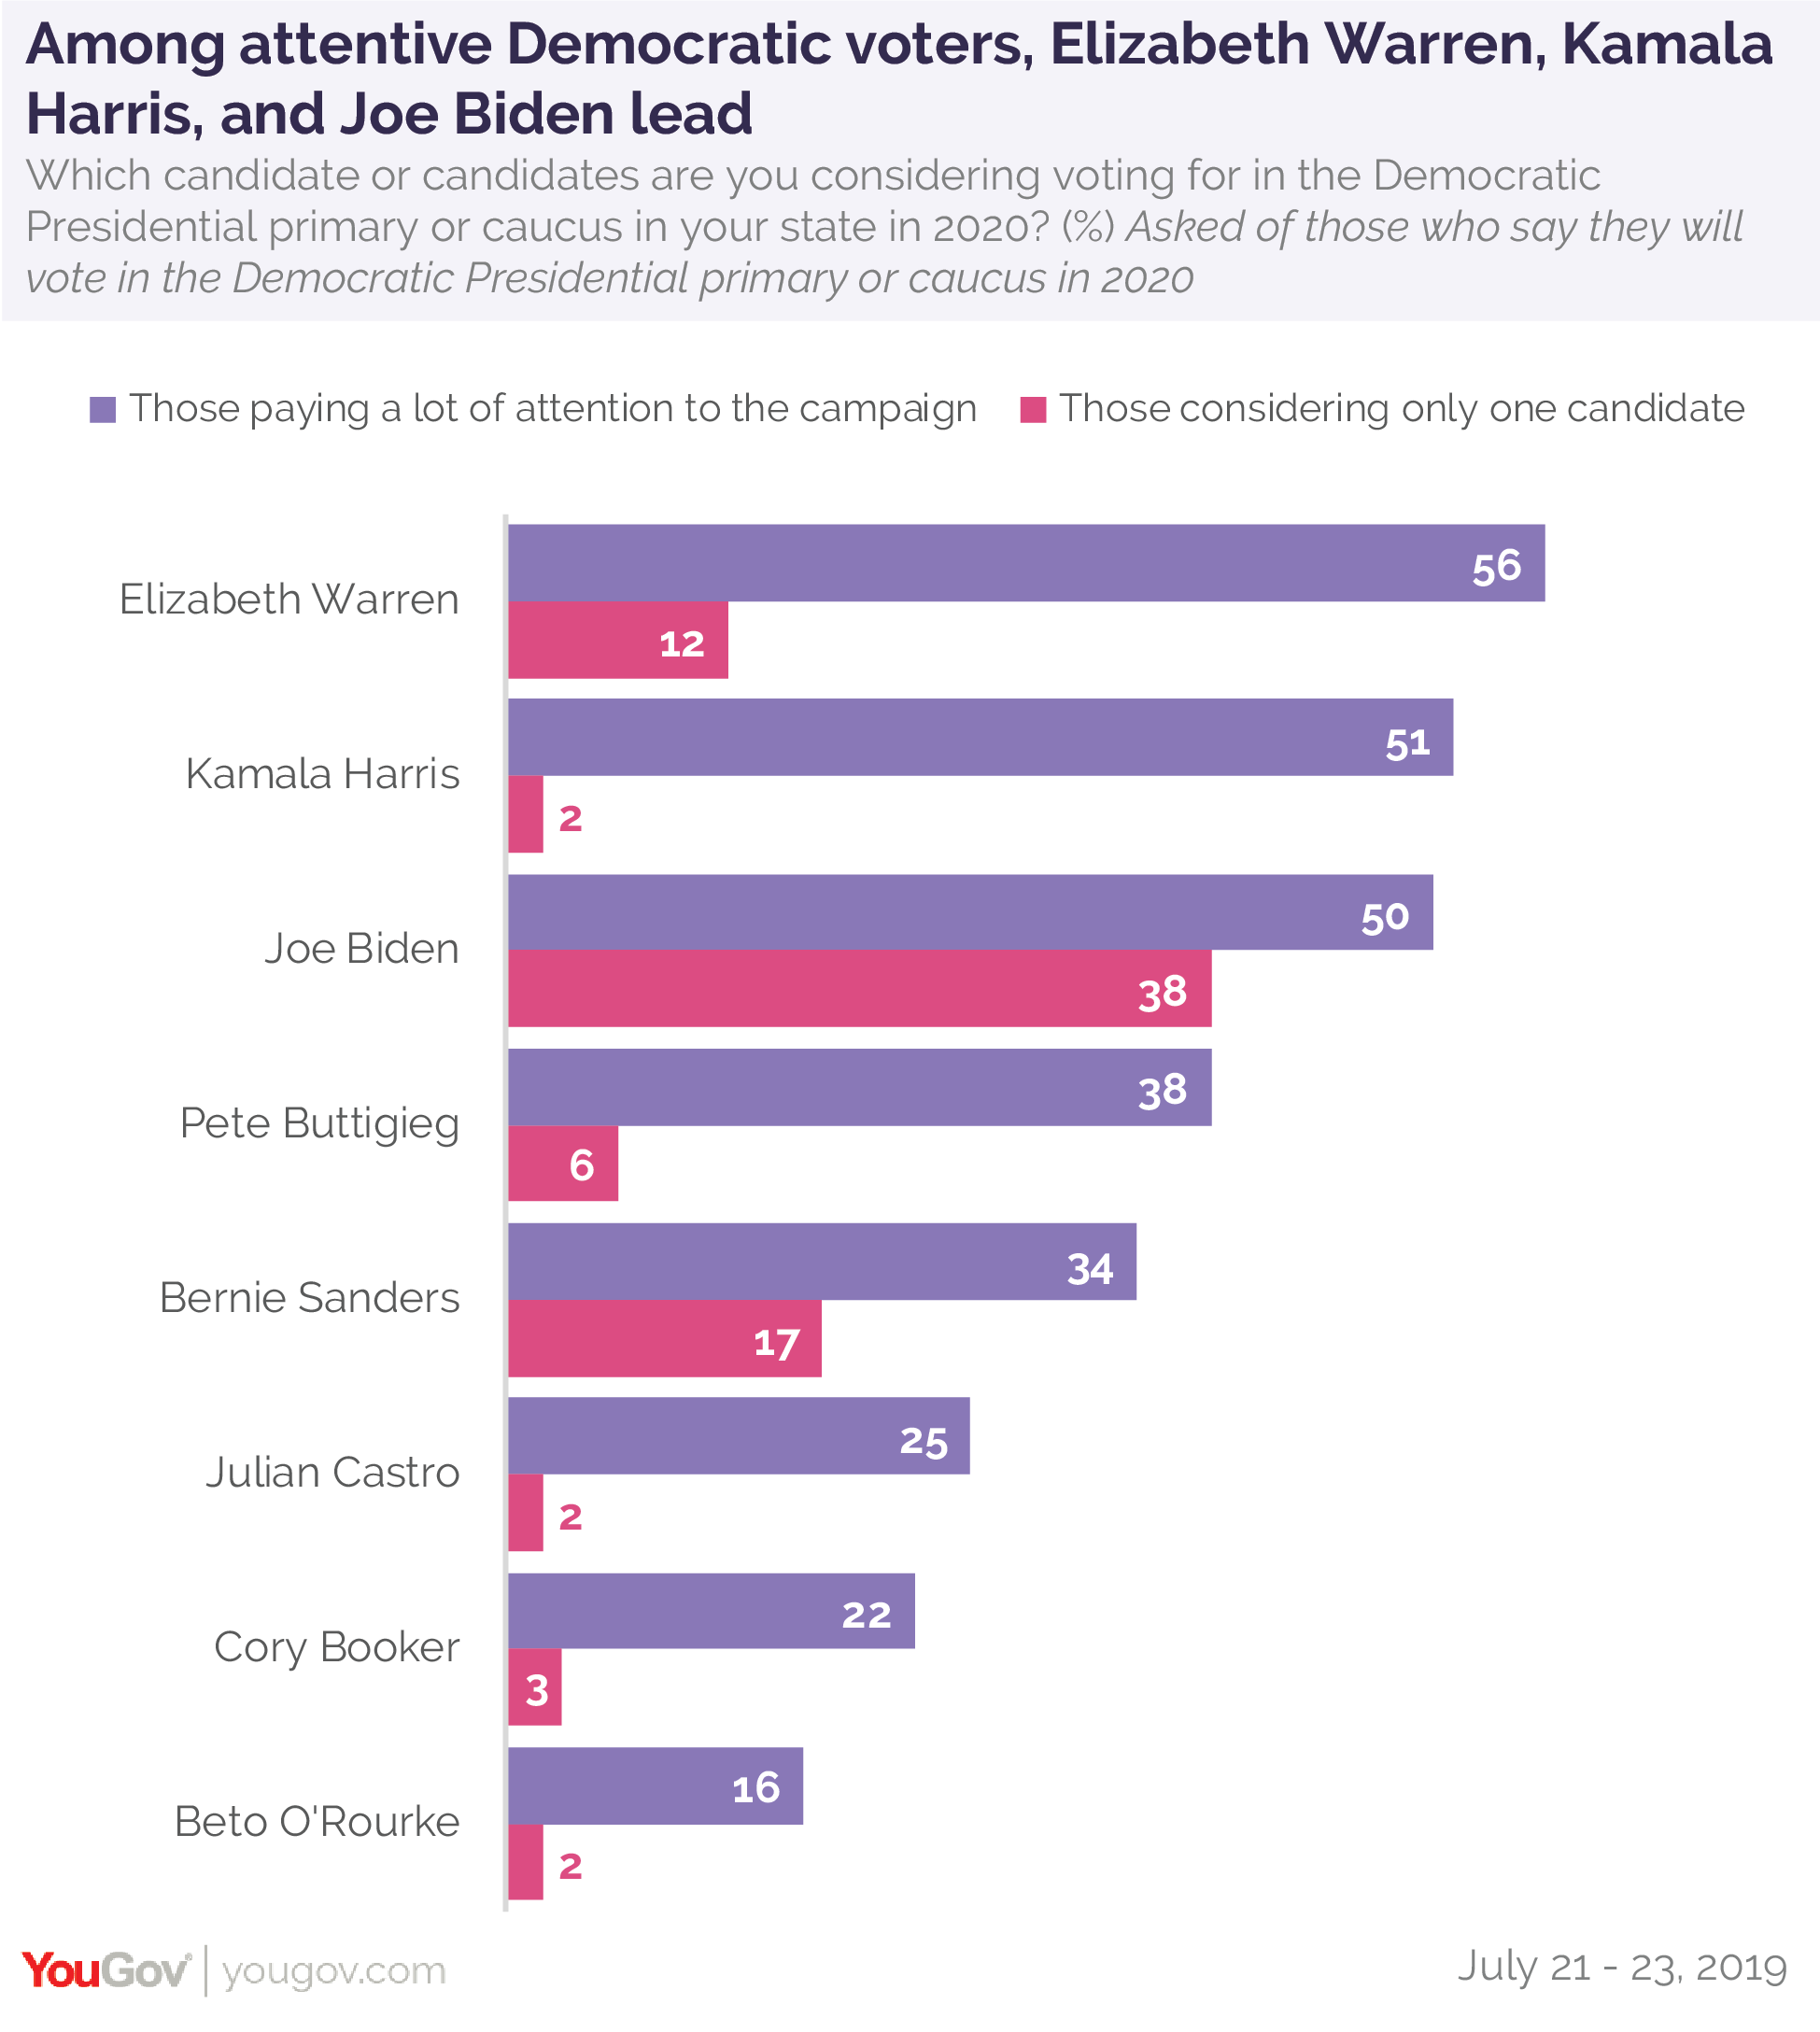 Among attentive Democratic voters, Elizabeth Warren, Kamala Harris, and Joe Biden lead